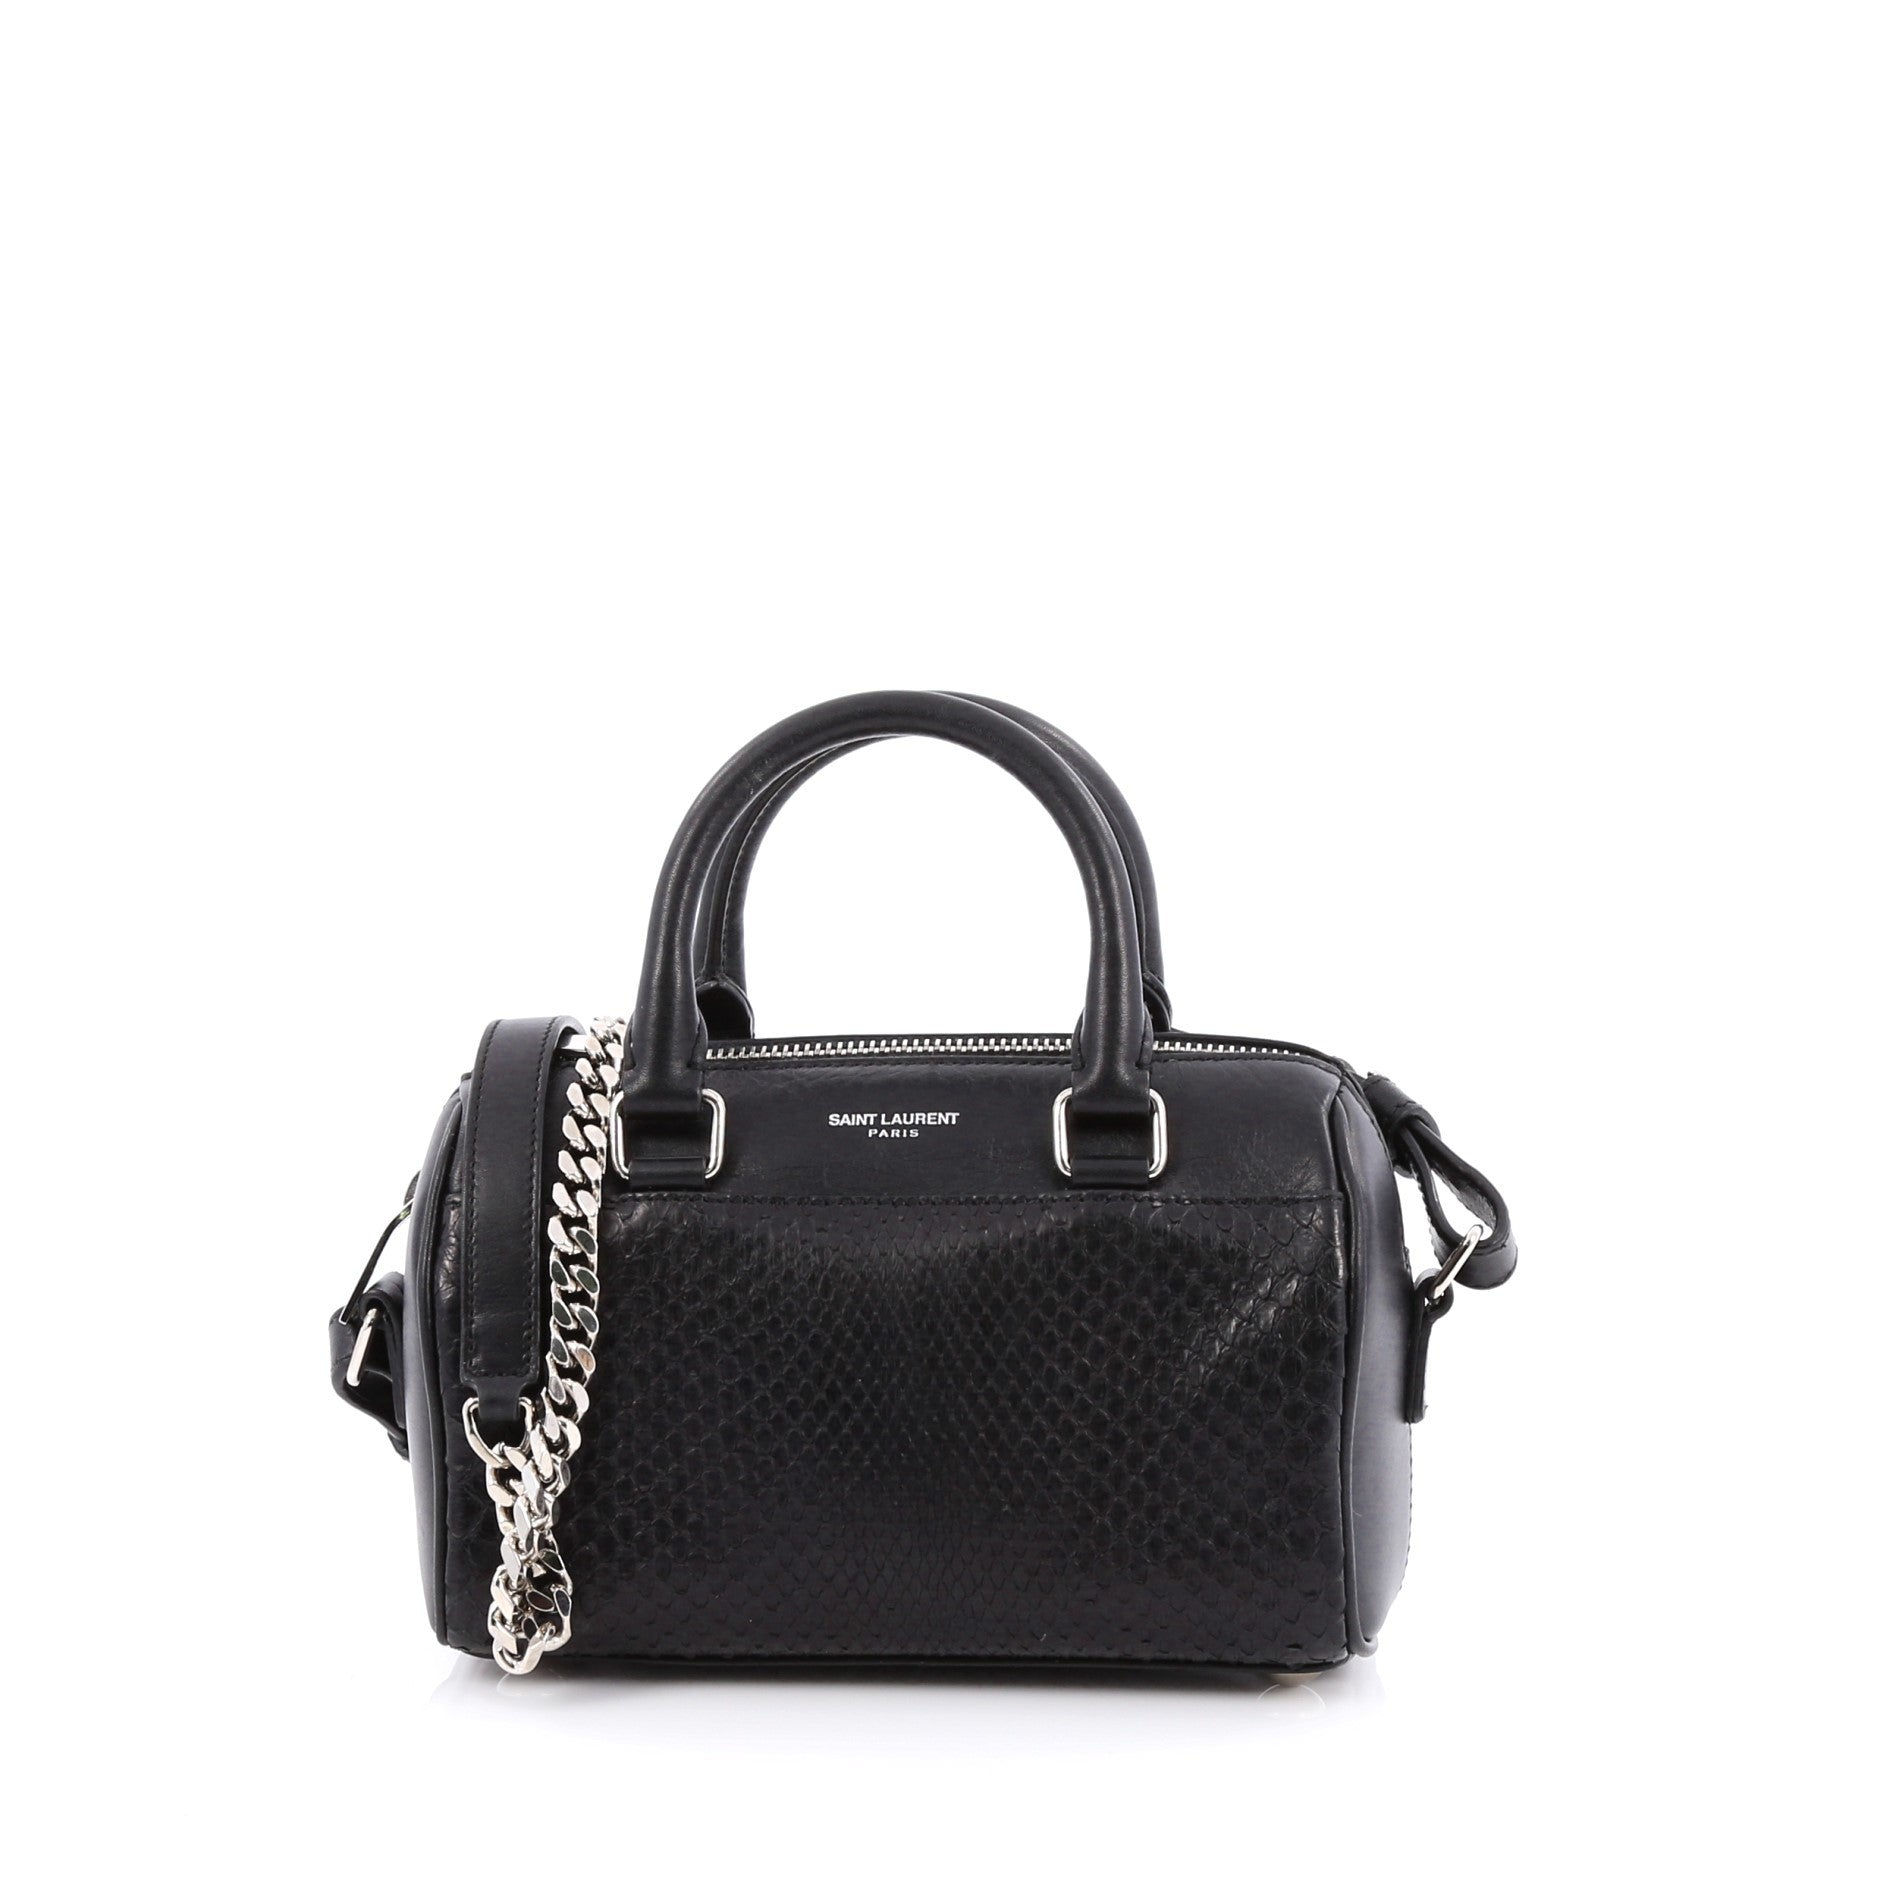 Saint Laurent Classic Duffle Toy Bag Python Embossed Leather